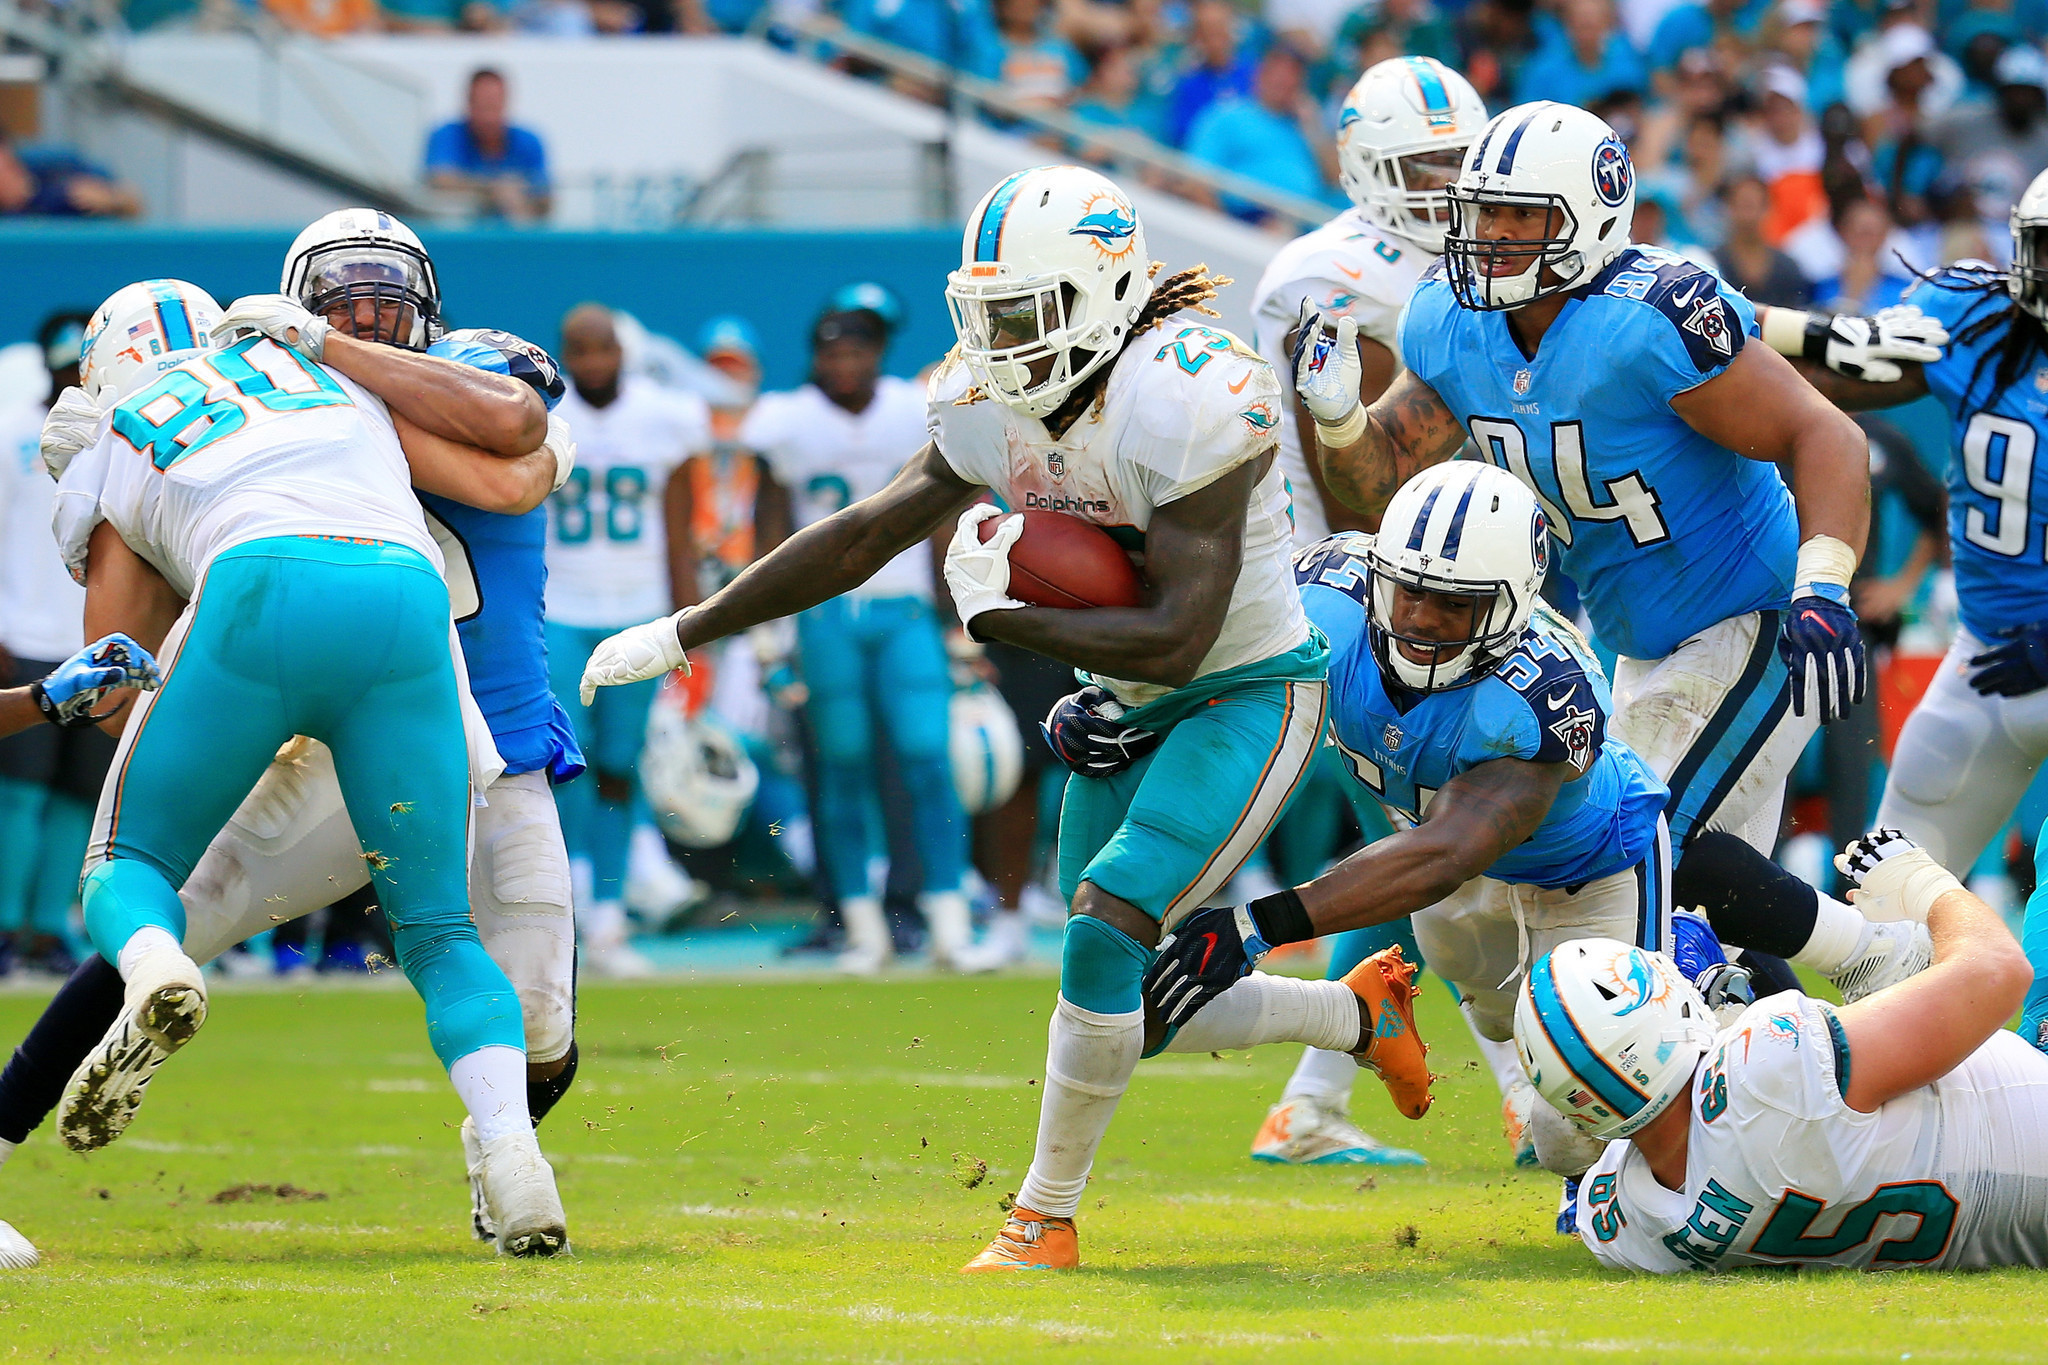 Sfl-five-keys-for-the-miami-dolphins-to-defeat-the-new-york-jets-20171019